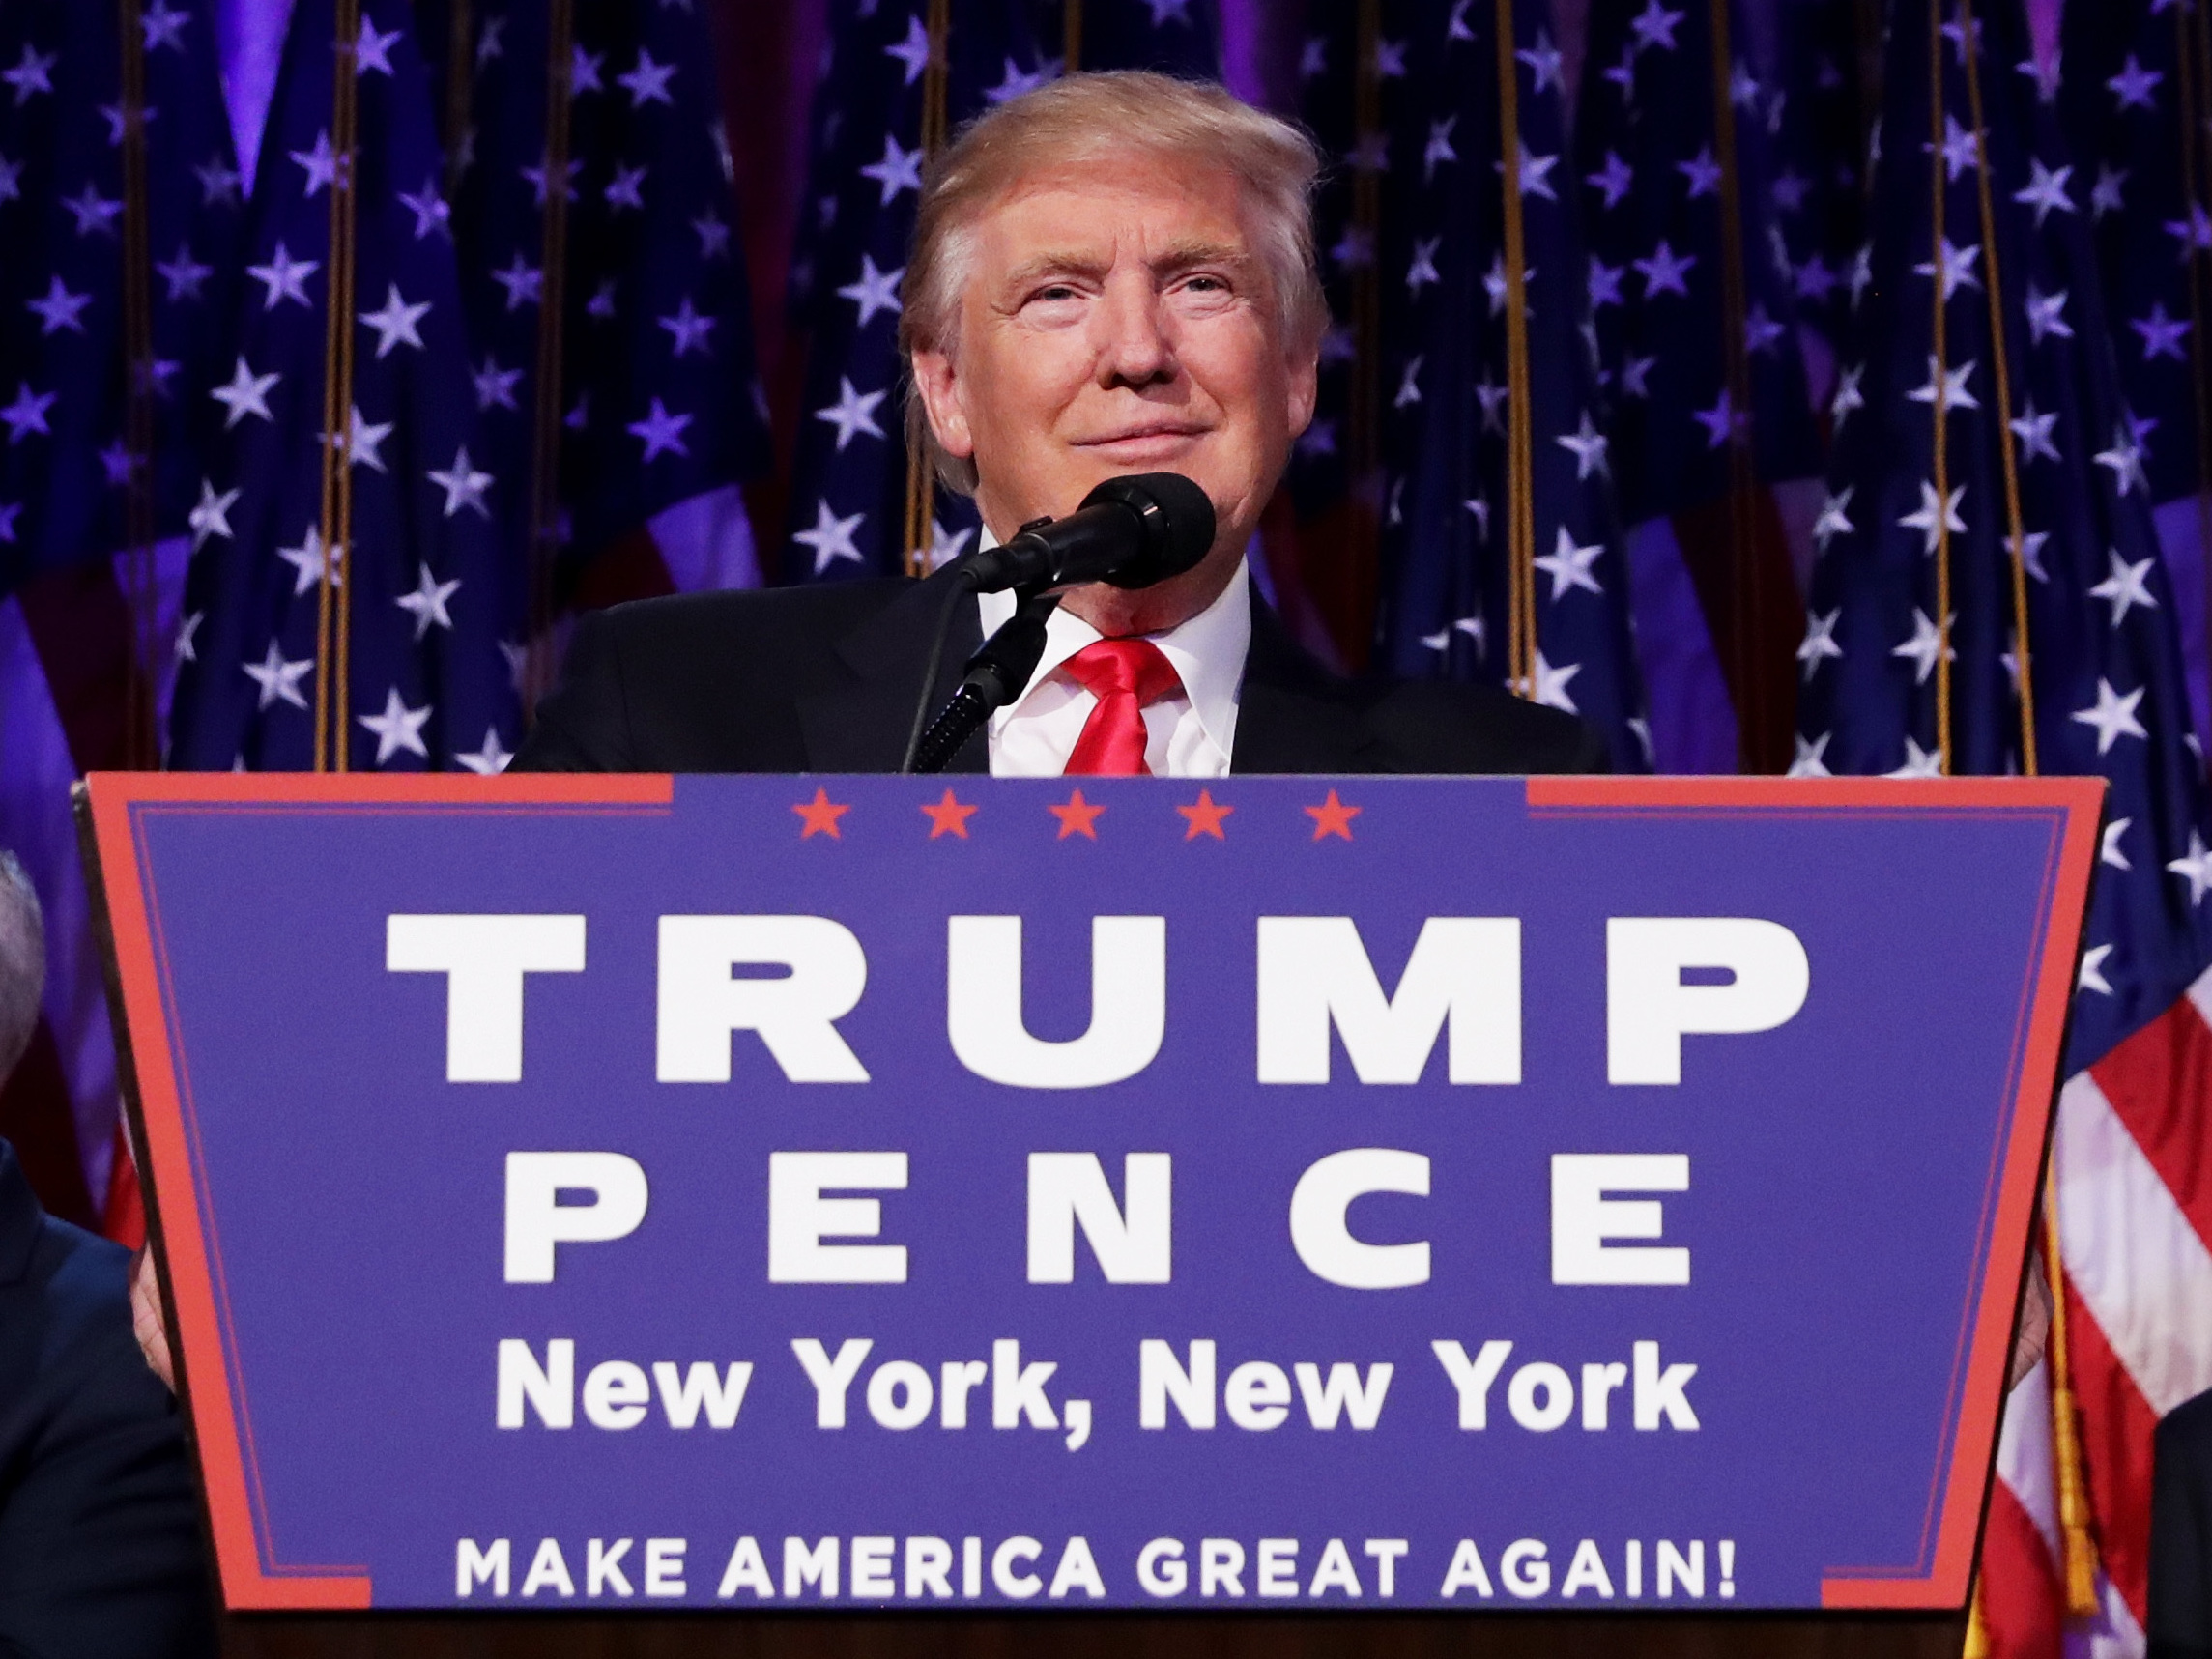 Trump wins United States election but loses popular votes